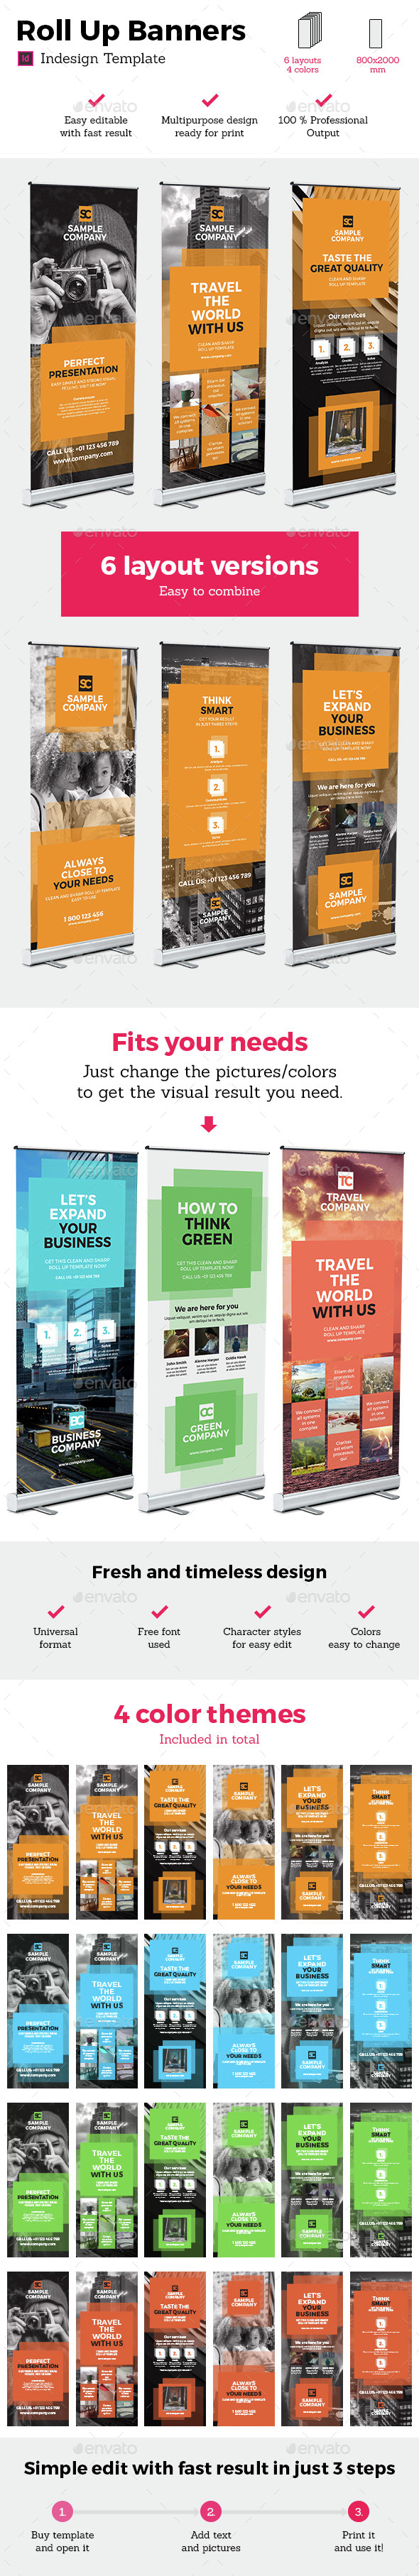 Rollup Stand Banner Display 24x Indesign Template - Signage Print Templates